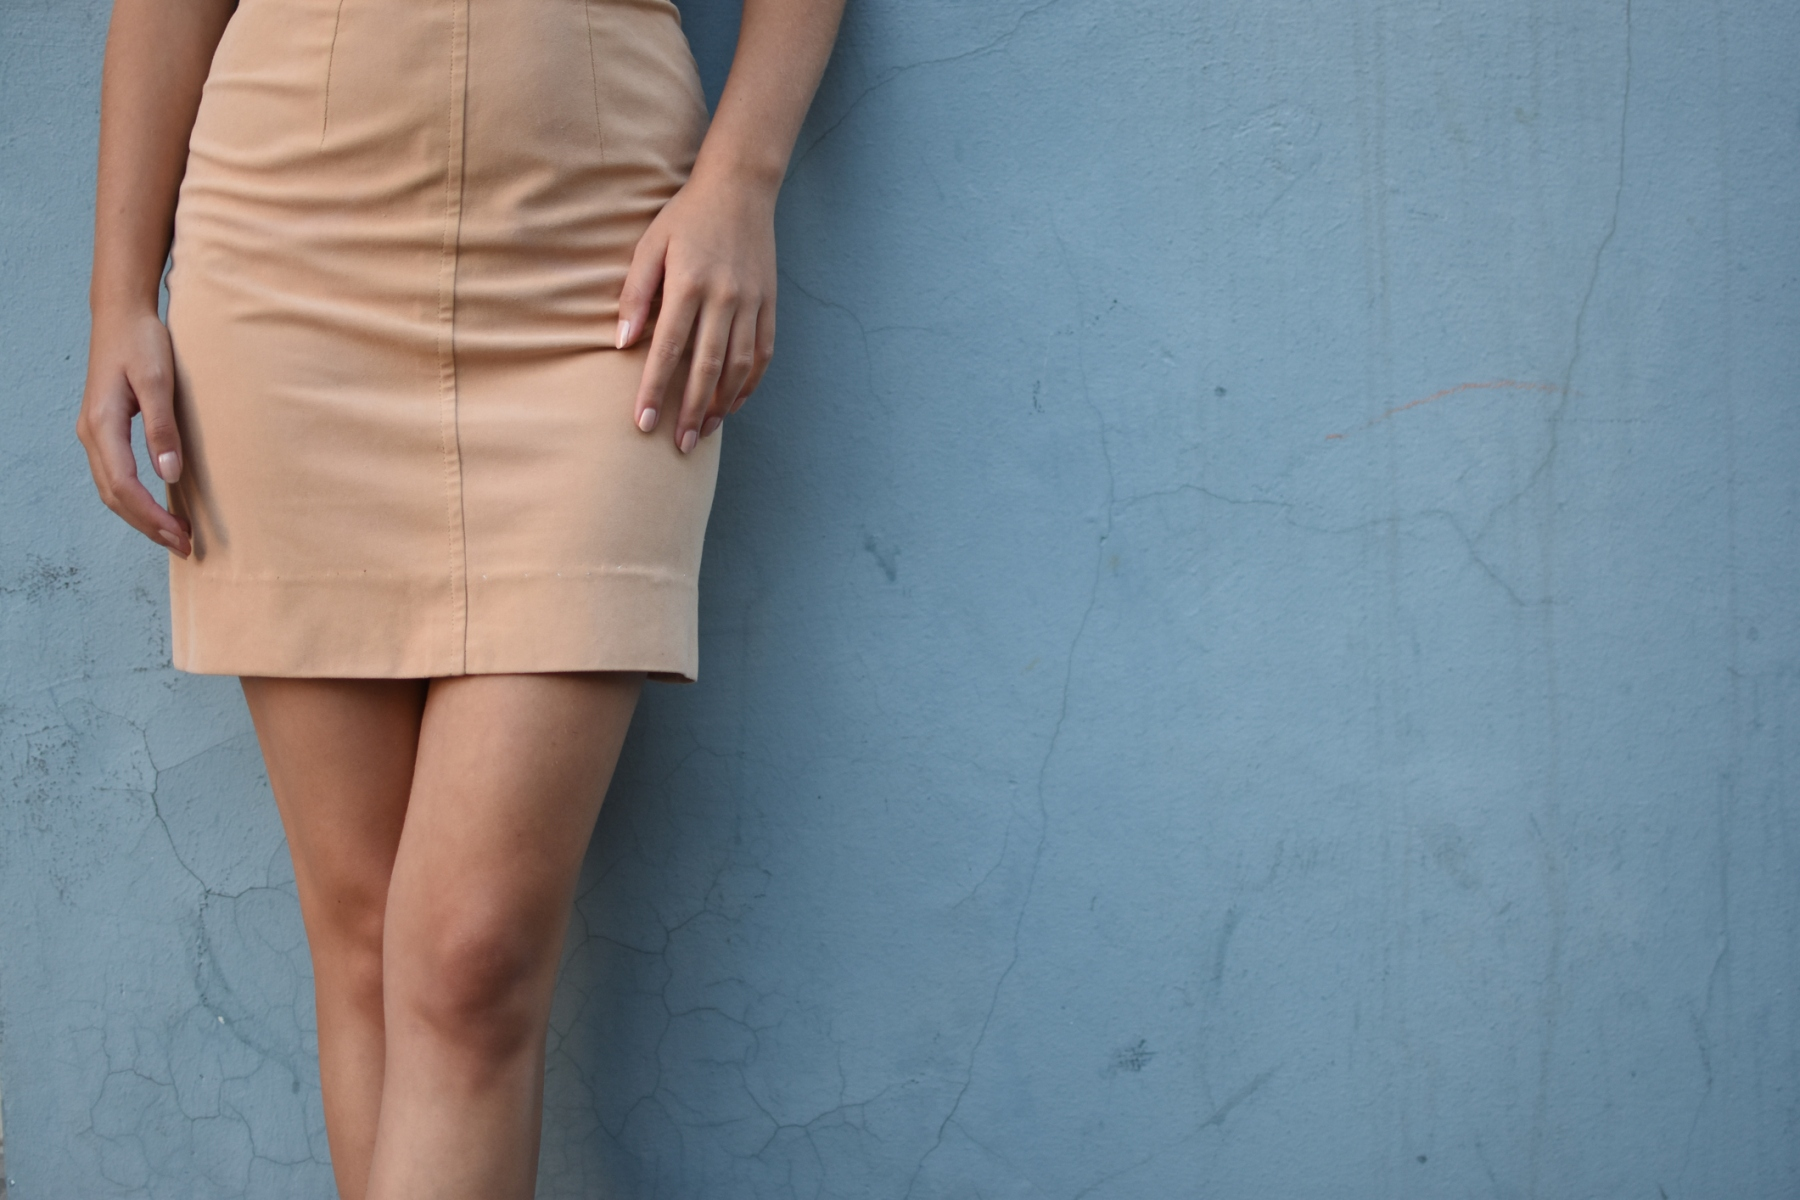 upskirting is now illegal